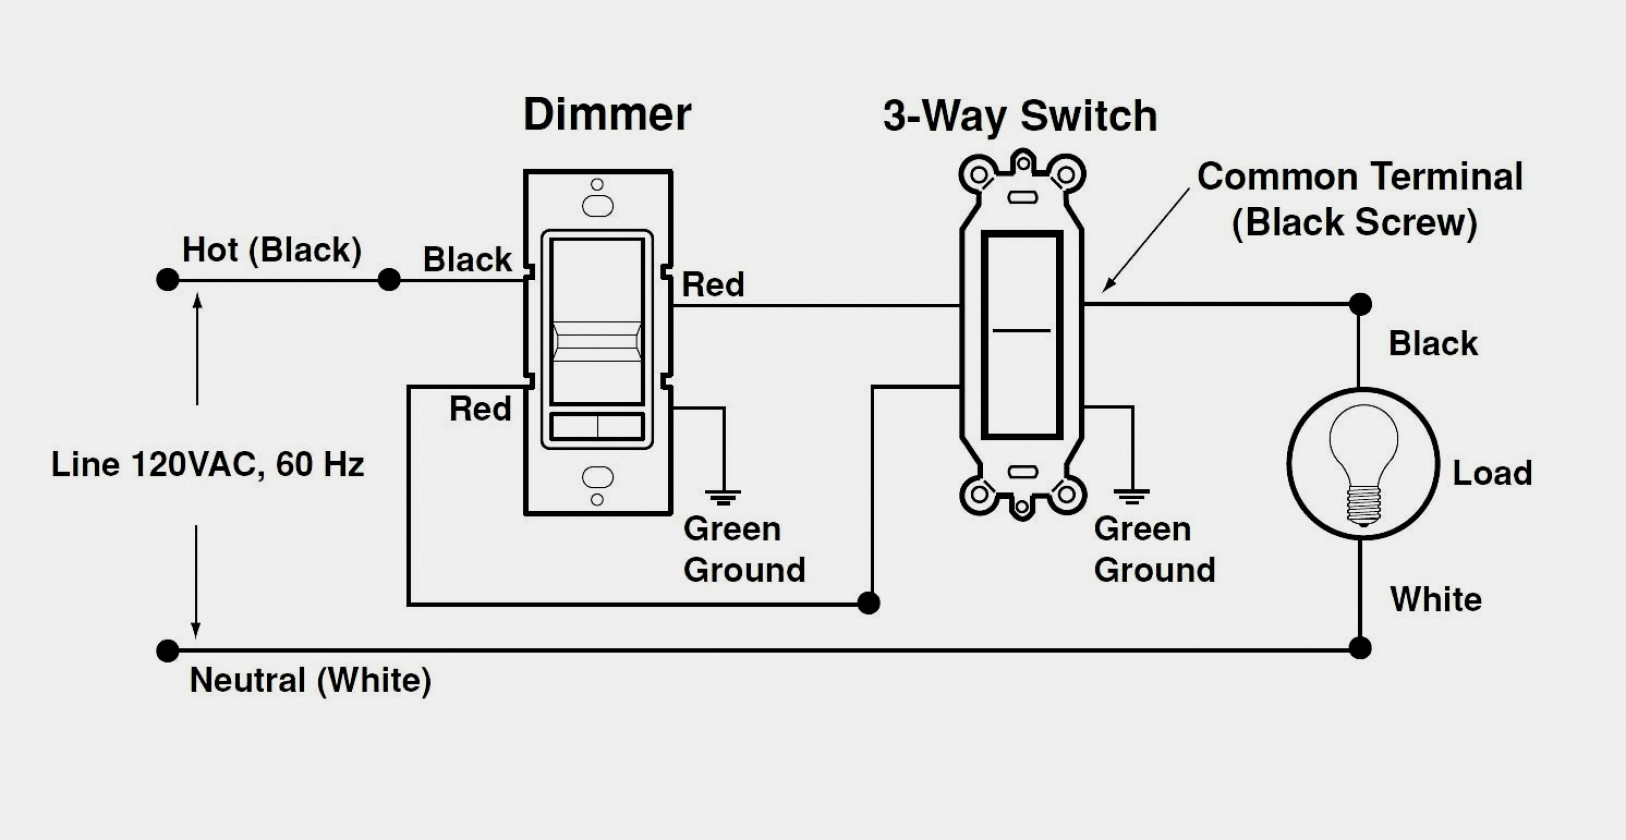 Leviton T5225 Wiring Diagram | Wiring Diagram - Double Switch Wiring Diagram